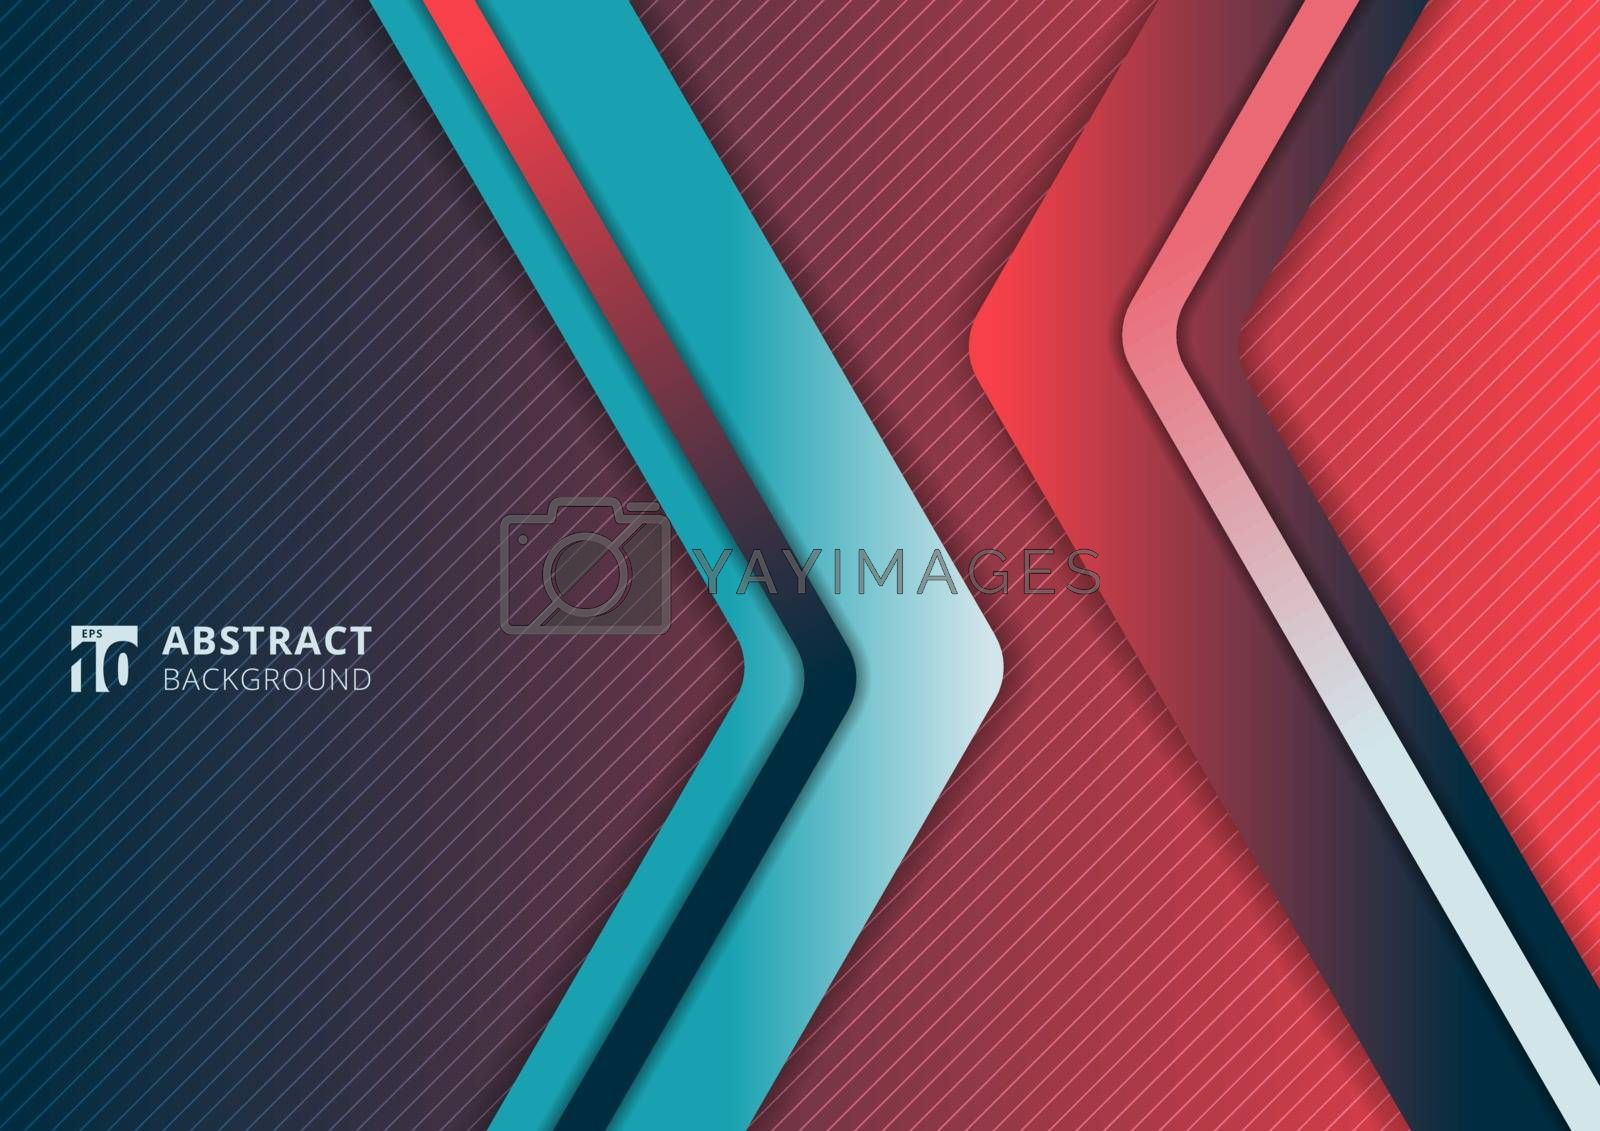 Abstract modern gradient vibrant color triangle geometric overlap layer on pink and blue background technology concept. Arrow shape direction template for cover brochure, poster, banner web, flyer, presentation, etc. Vector illustration